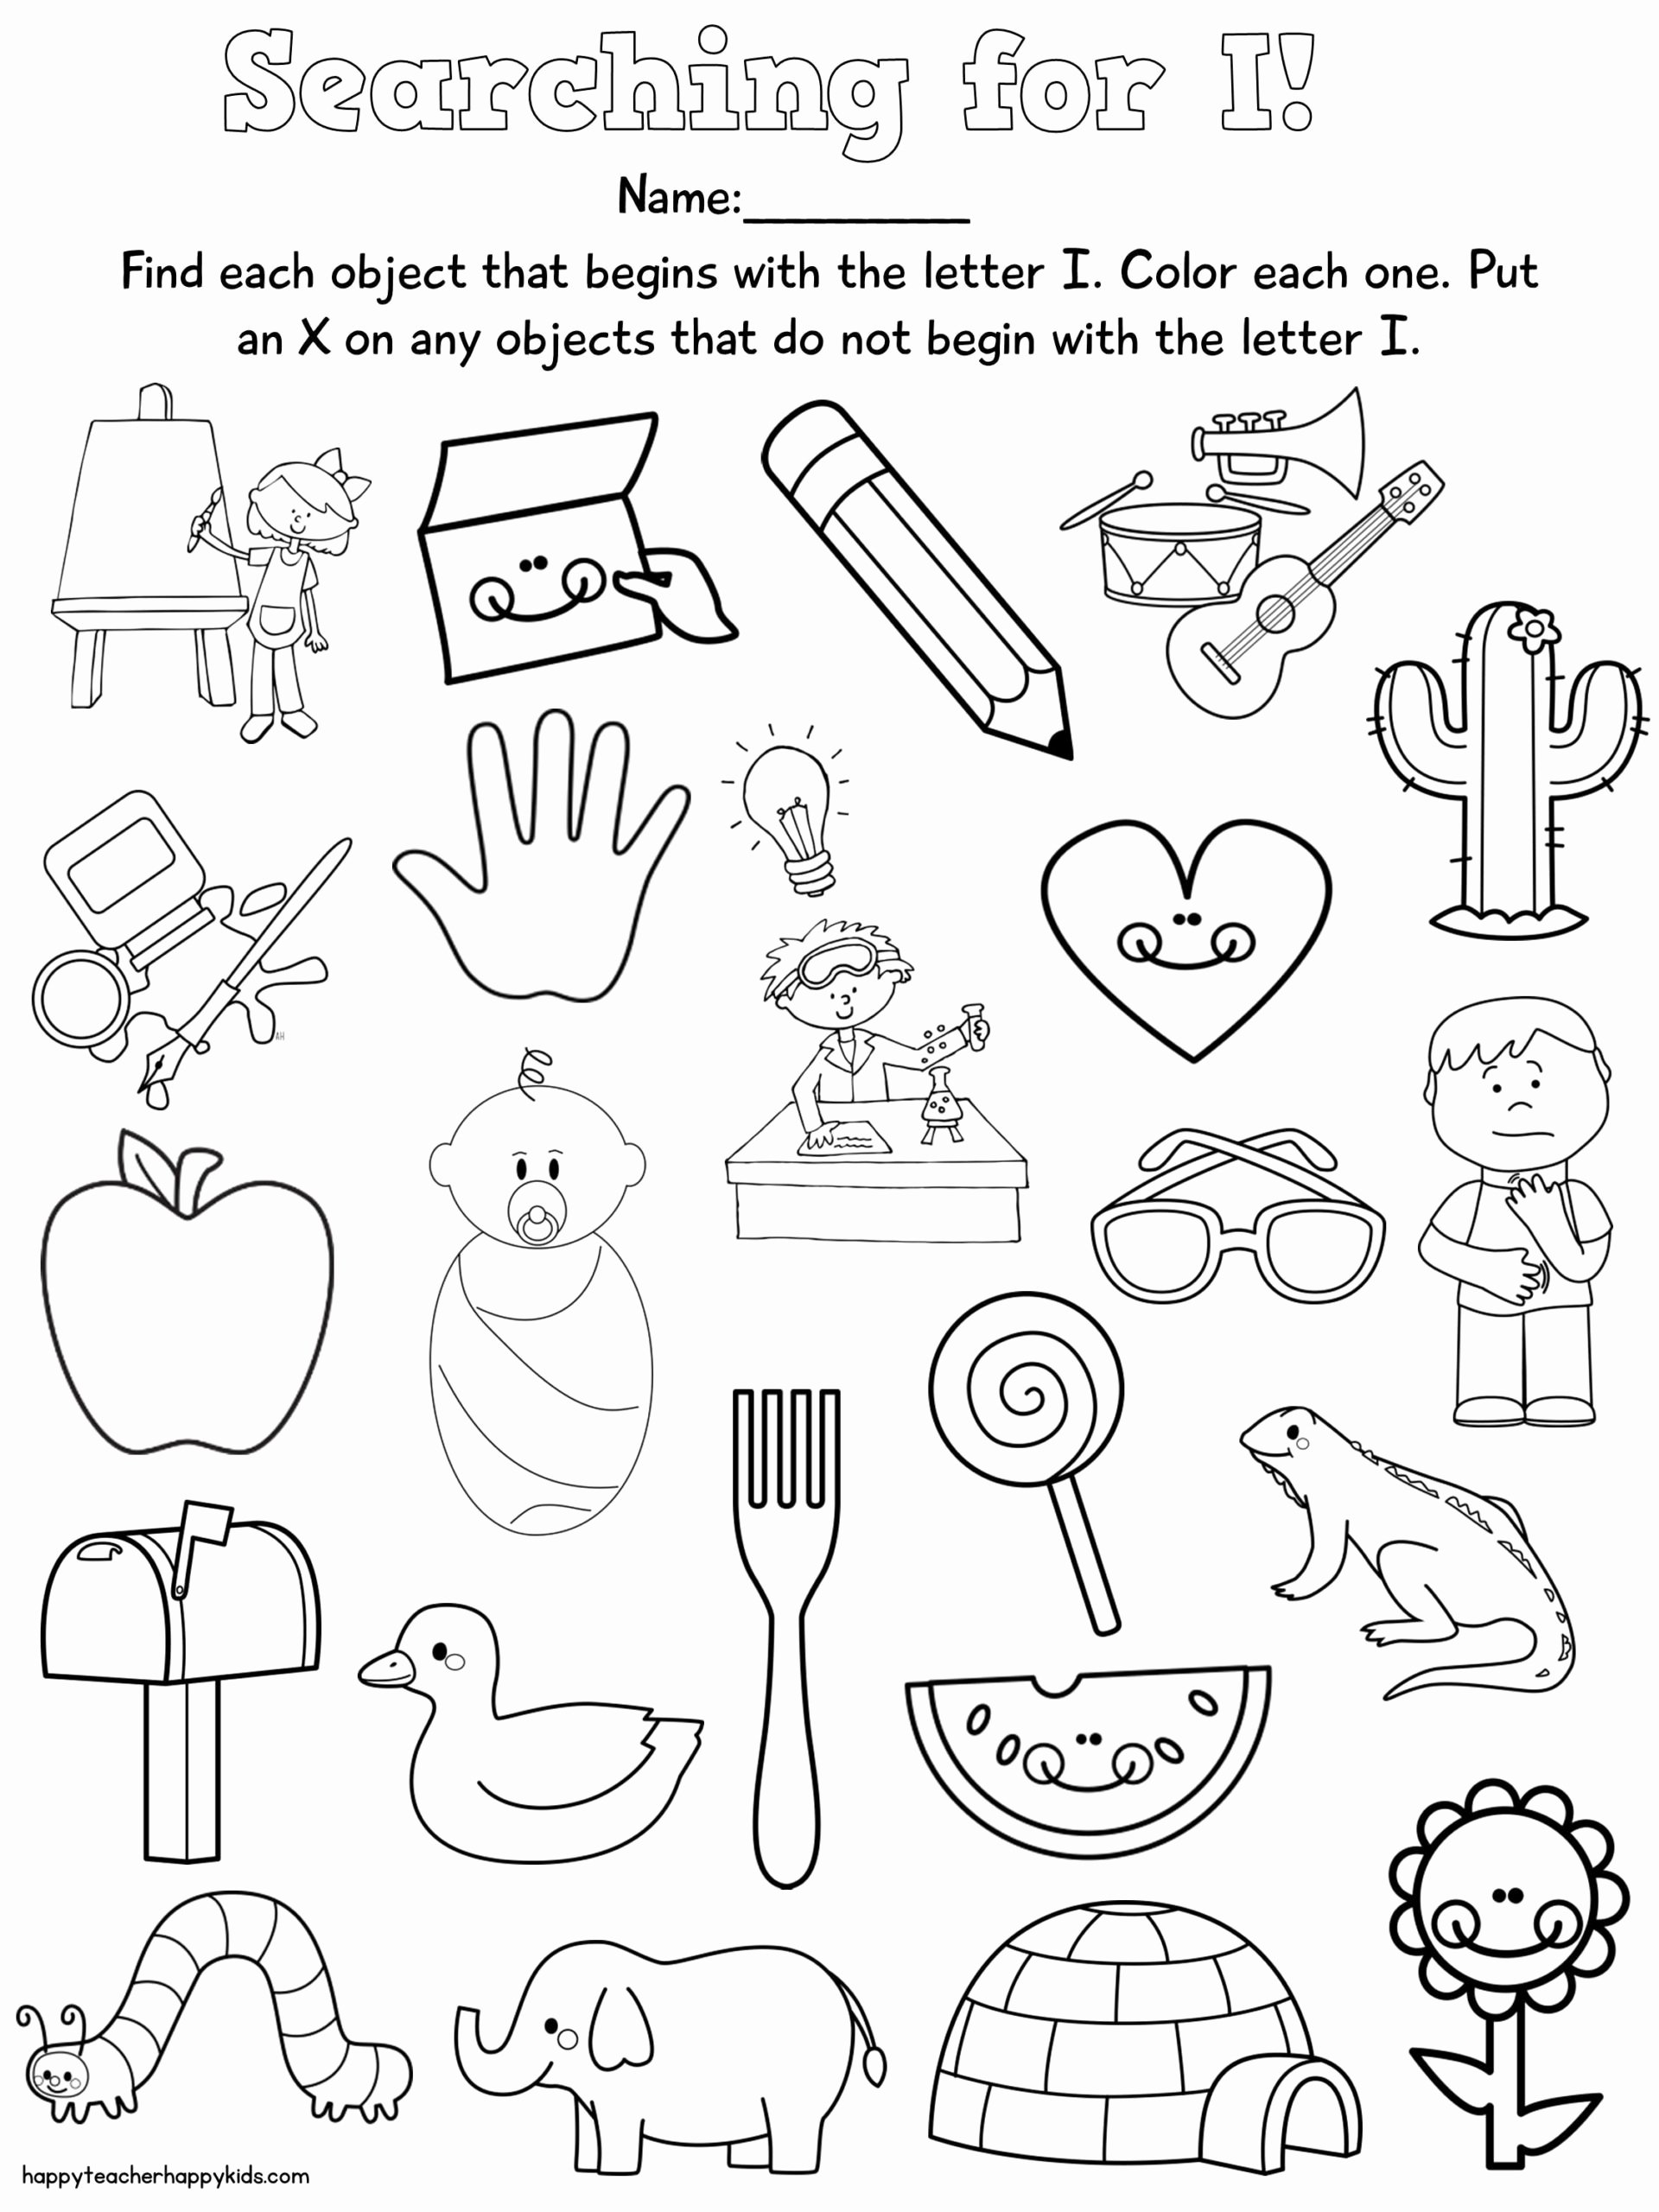 Ou Ow Worksheets 2nd Grade Inspirational Ii Phonics Worksheet Printable Worksheets and Activities for